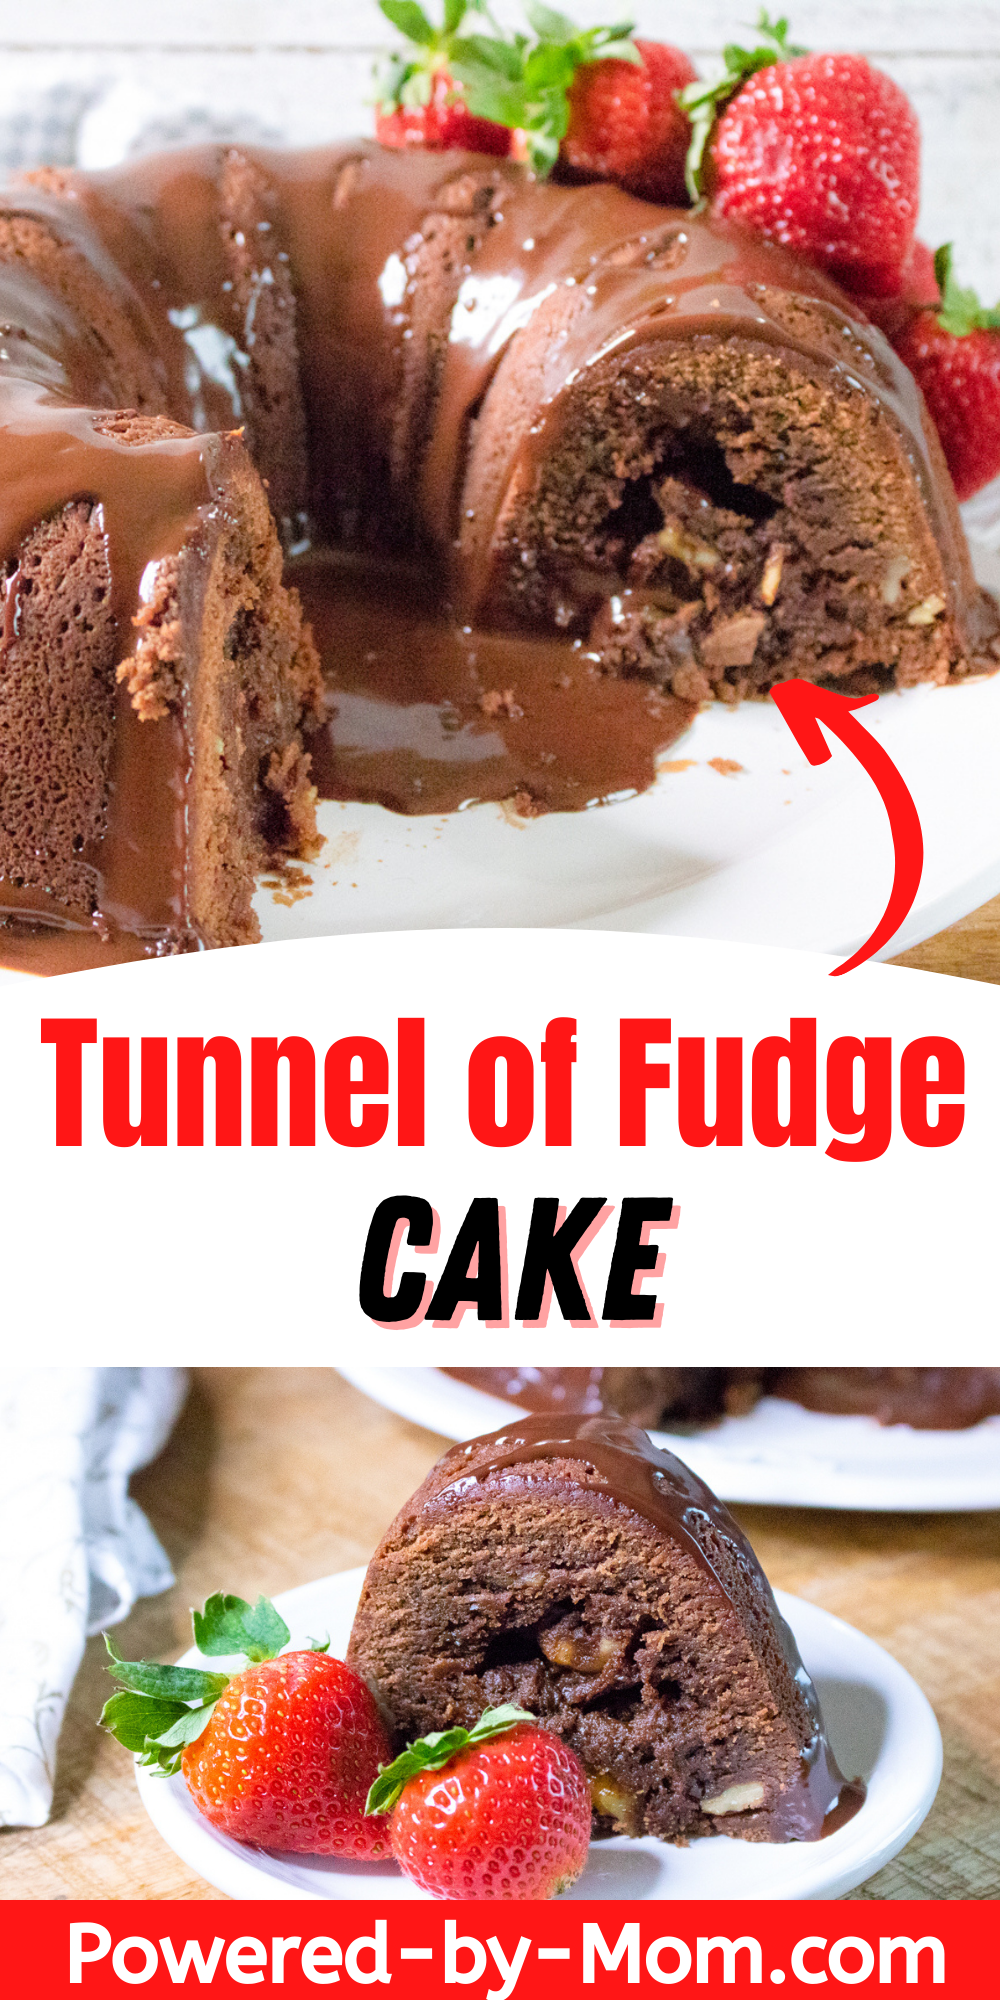 Make this delicious chocolate ganache recipe for a moist tunnel of fudge cake and watch everyone come running! This recipe is easier than you think.